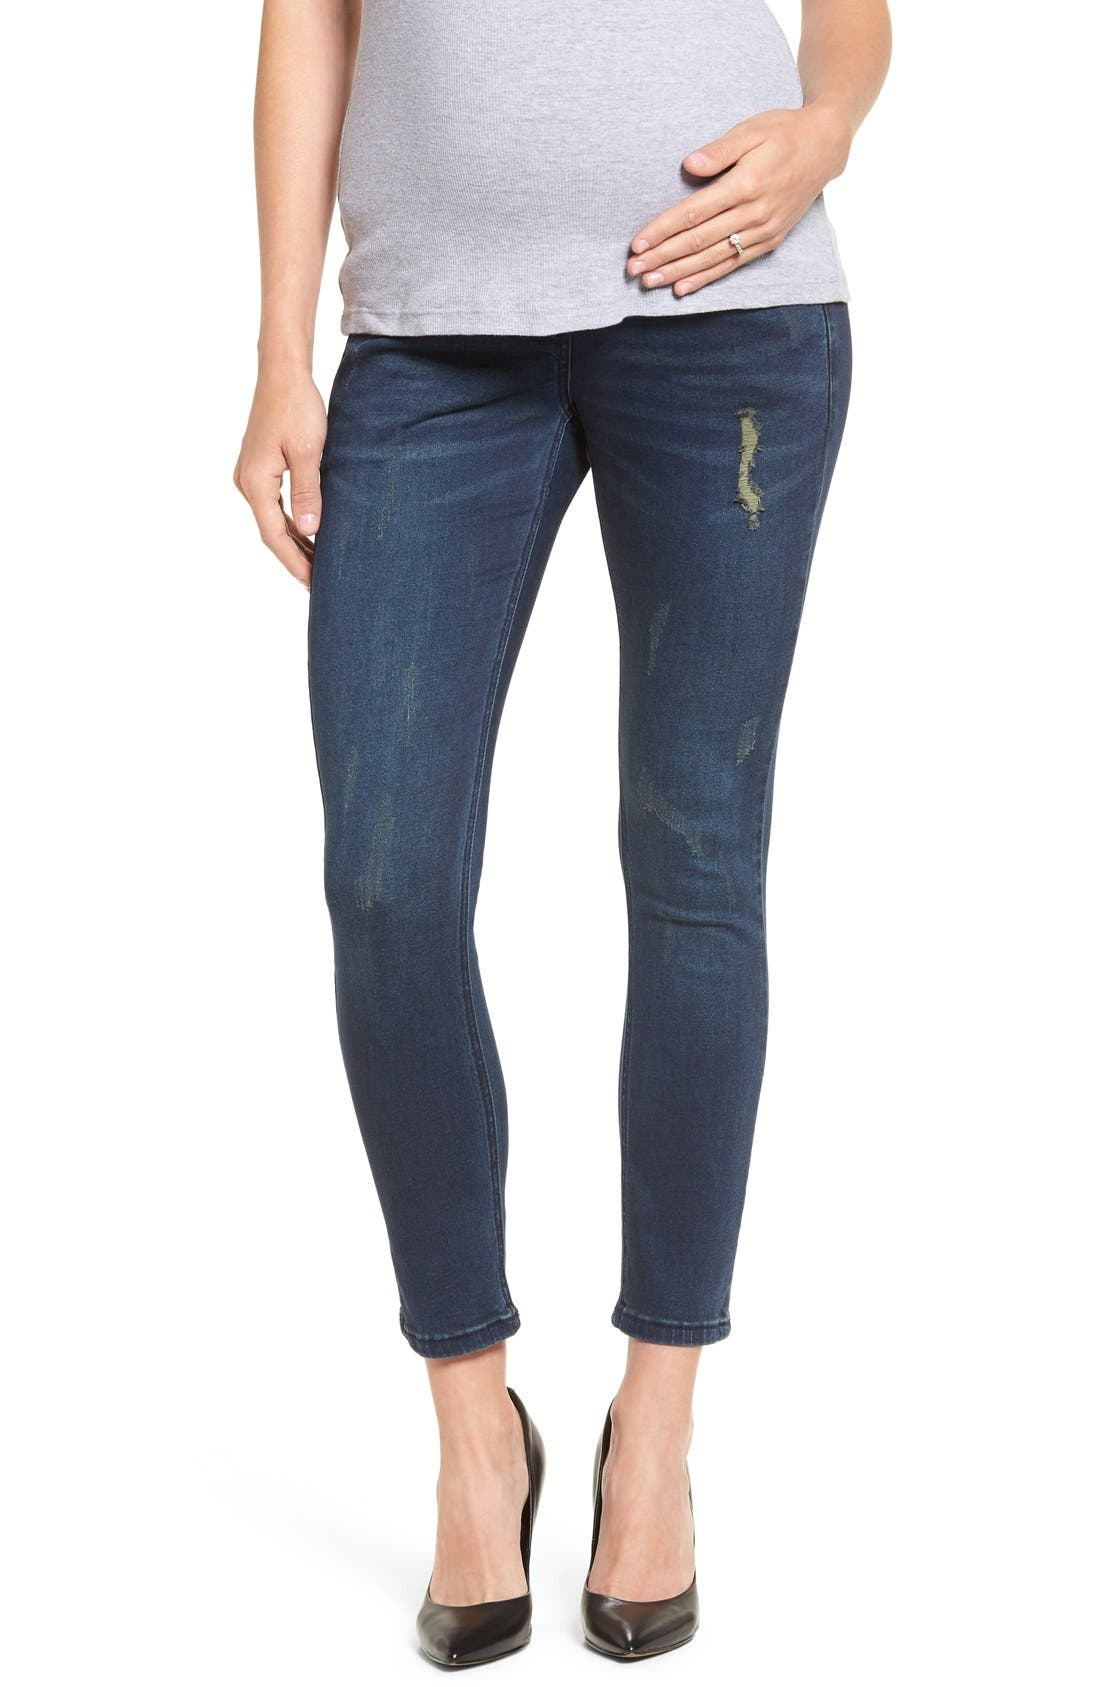 DistressedSkinnyMaternity Jeans,                             Main thumbnail 1, color,                             CLASSIC WASH